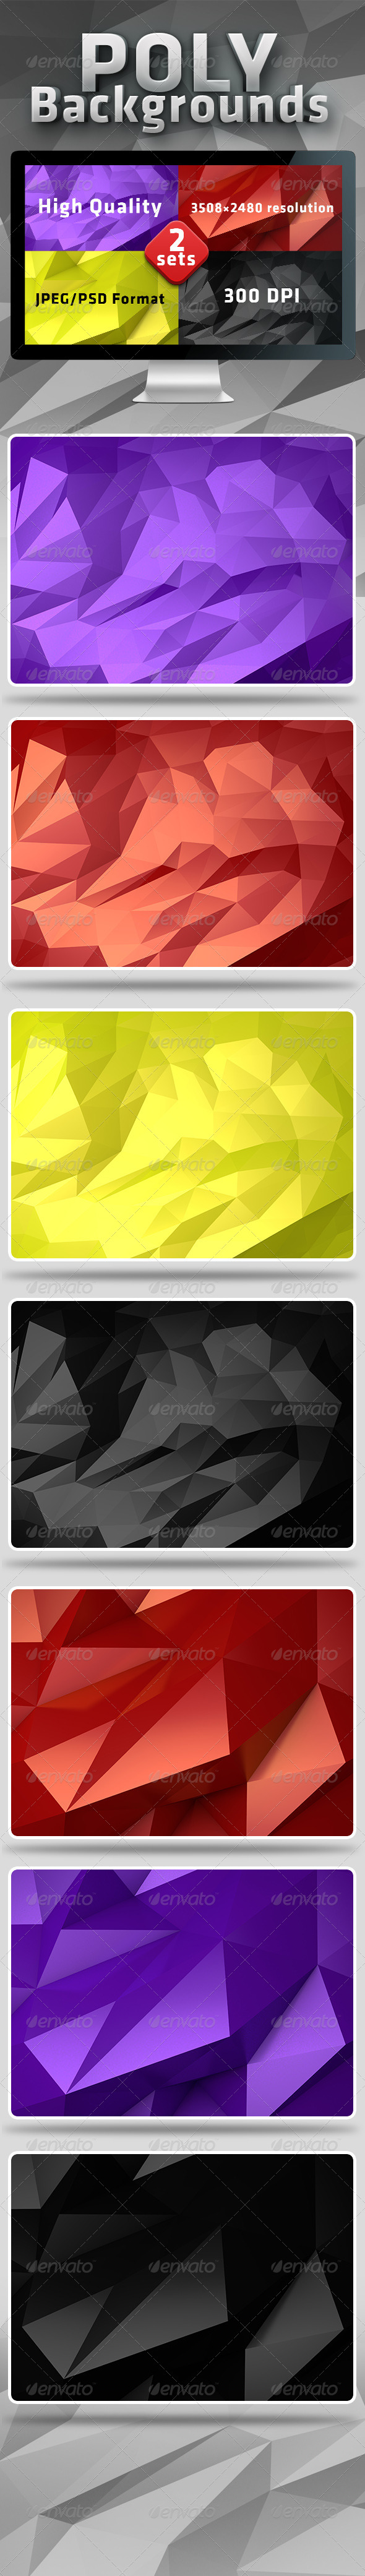 Poly Backgrounds - Abstract Backgrounds